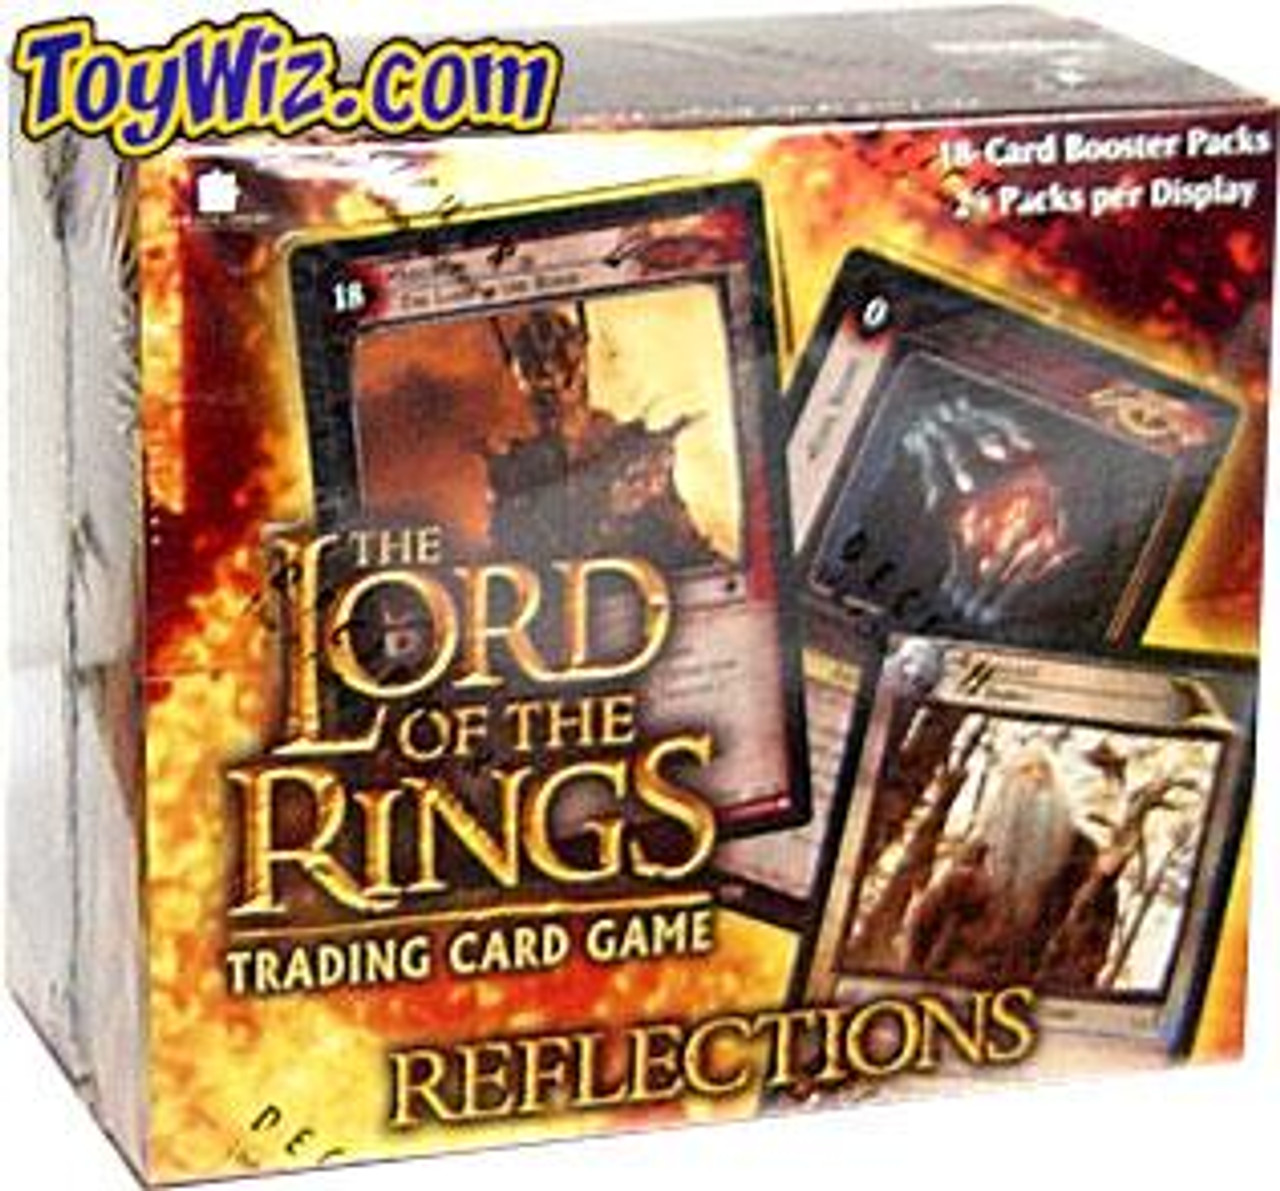 The Lord of the Rings Trading Card Game Reflections Booster Box [24 Packs]